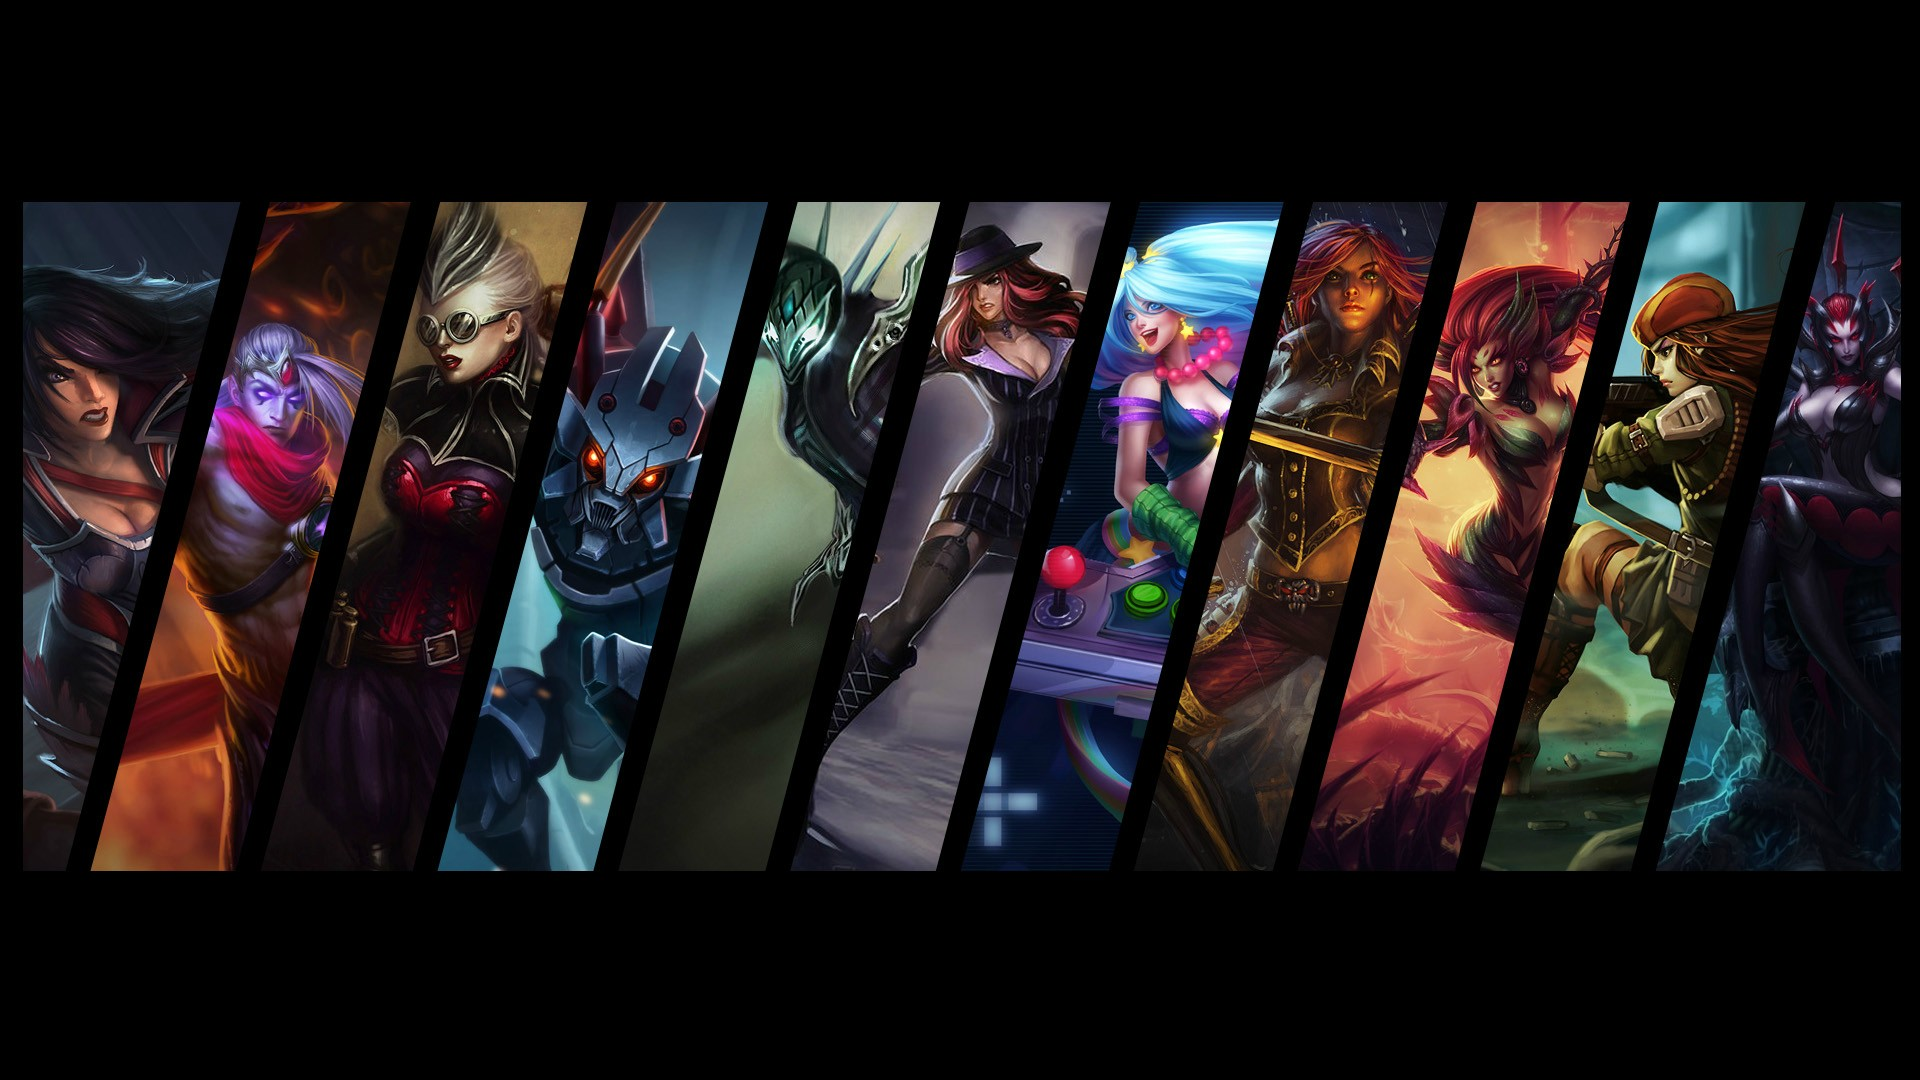 League of Legends Desktop Background - Imgur